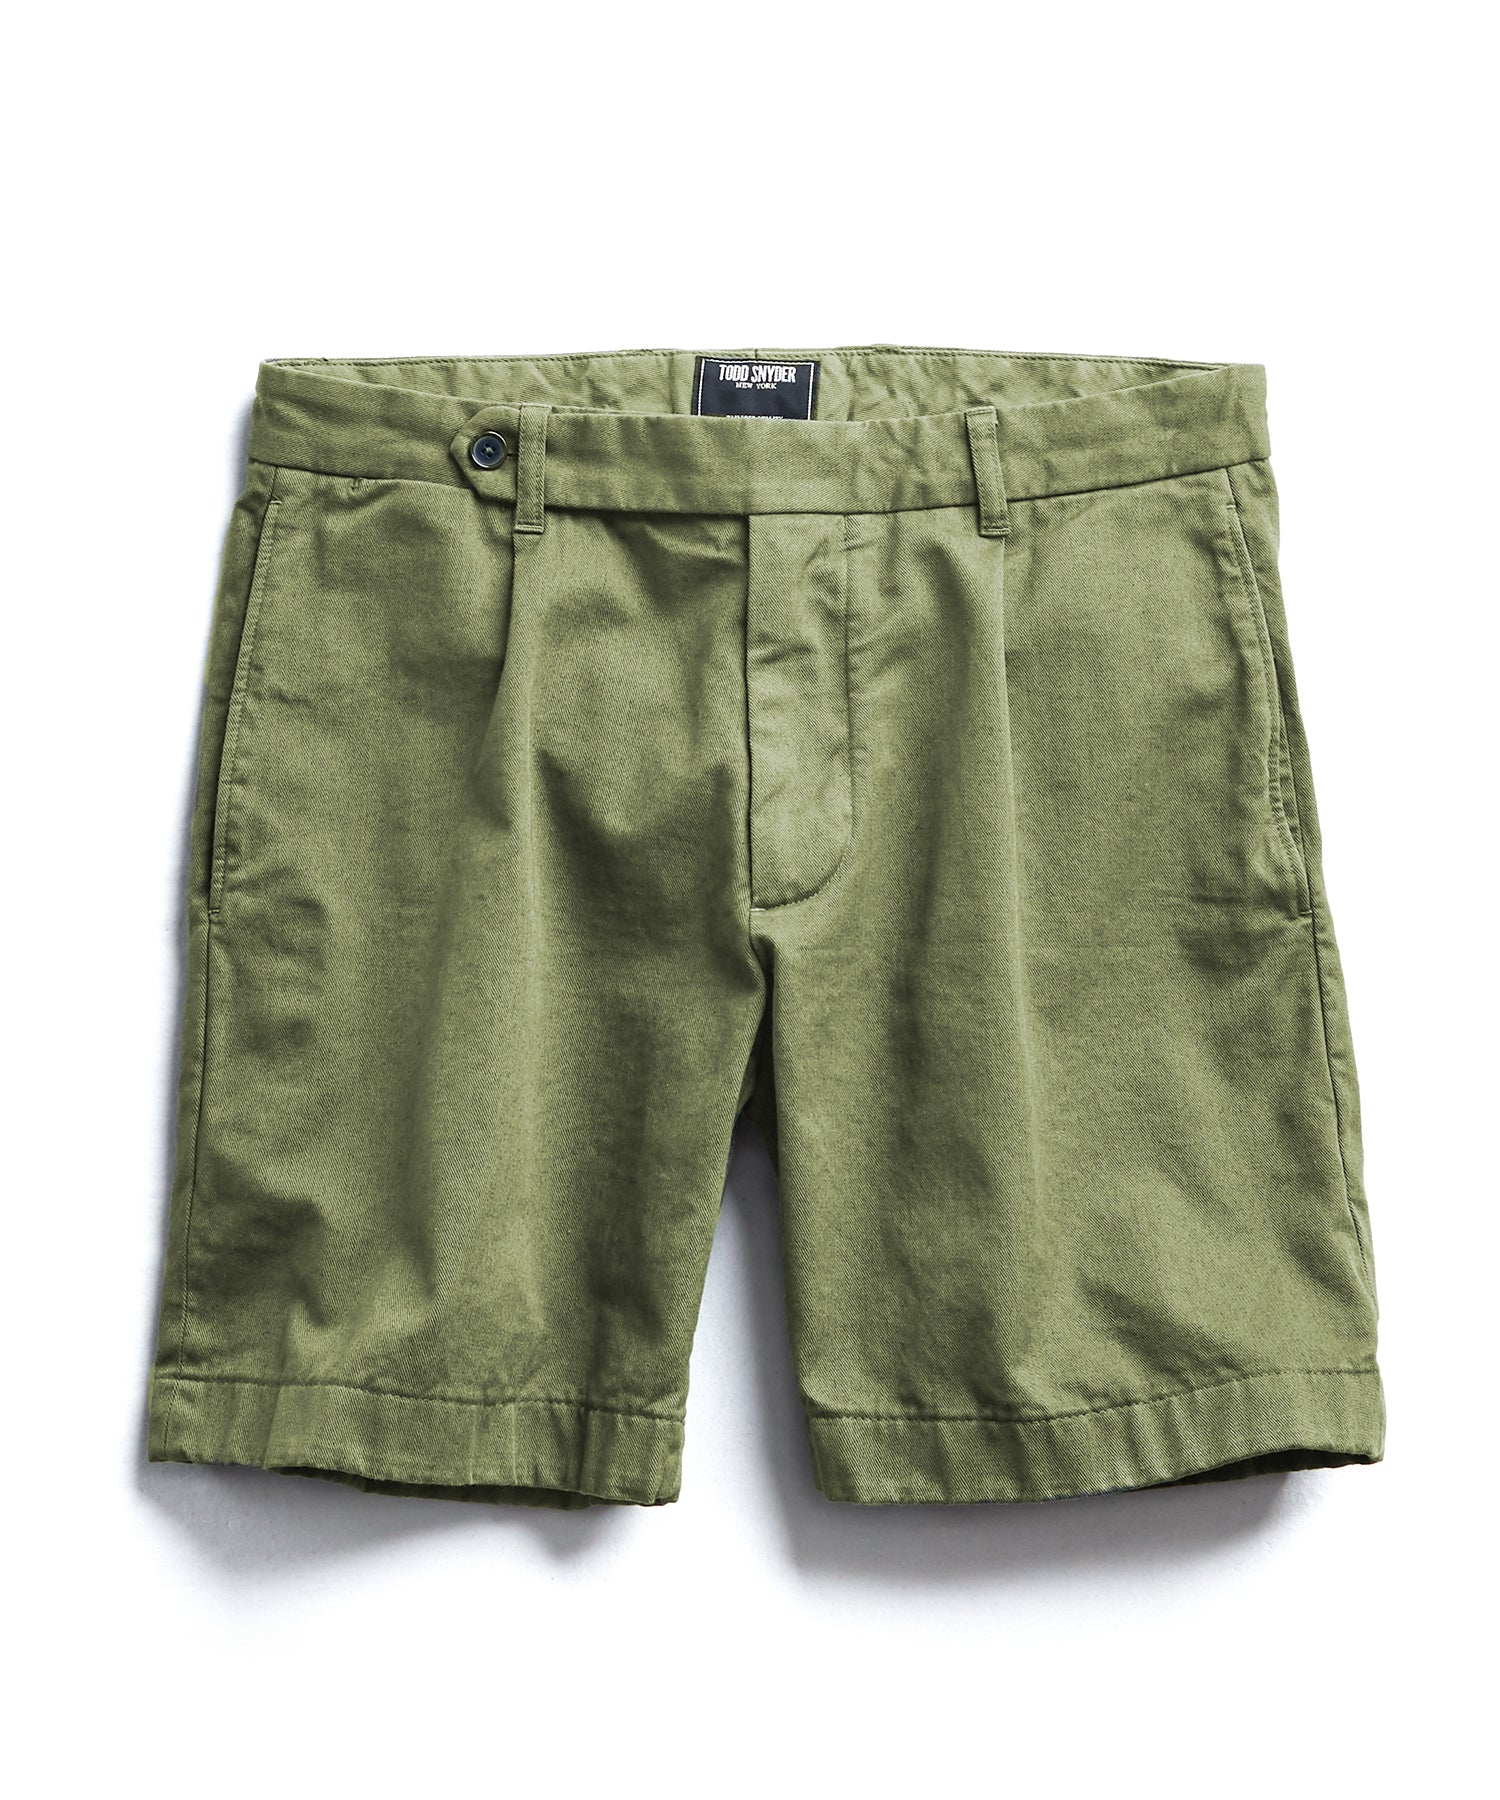 Extended Tab Selvedge Chino Short in Olive